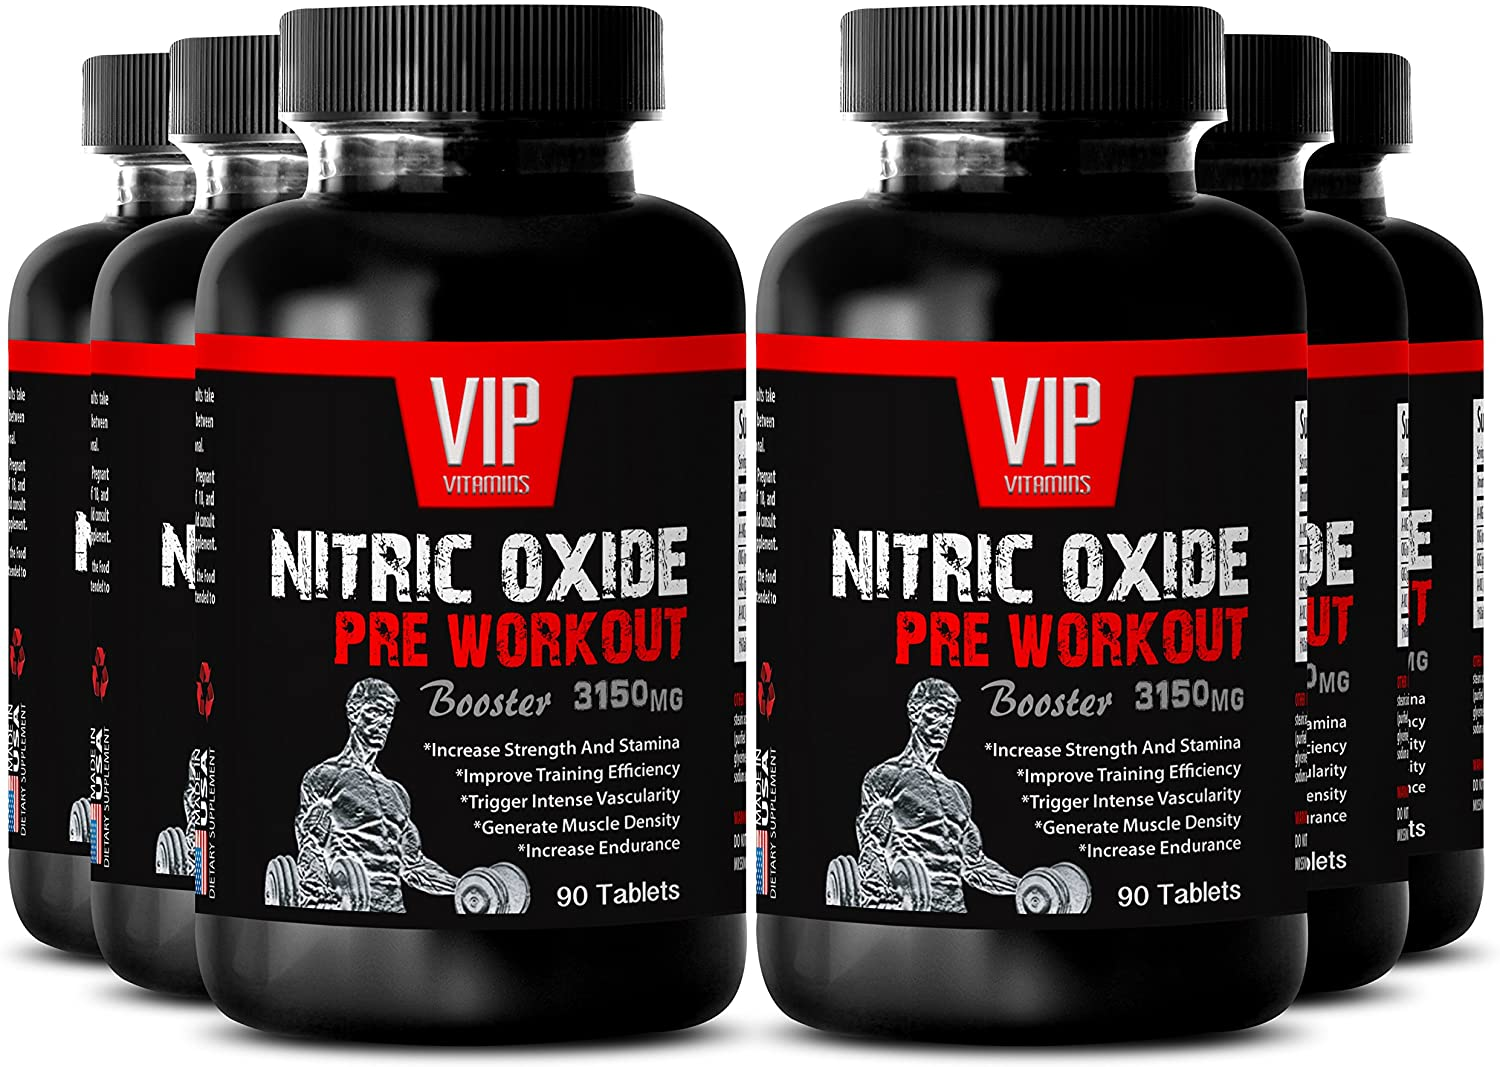 Best Nitric Oxide Power - Nitric Oxide Pre-Workout Booster 3150mg - Strength Workout and Muscle Pump (6 Bottles 540 Tablets)